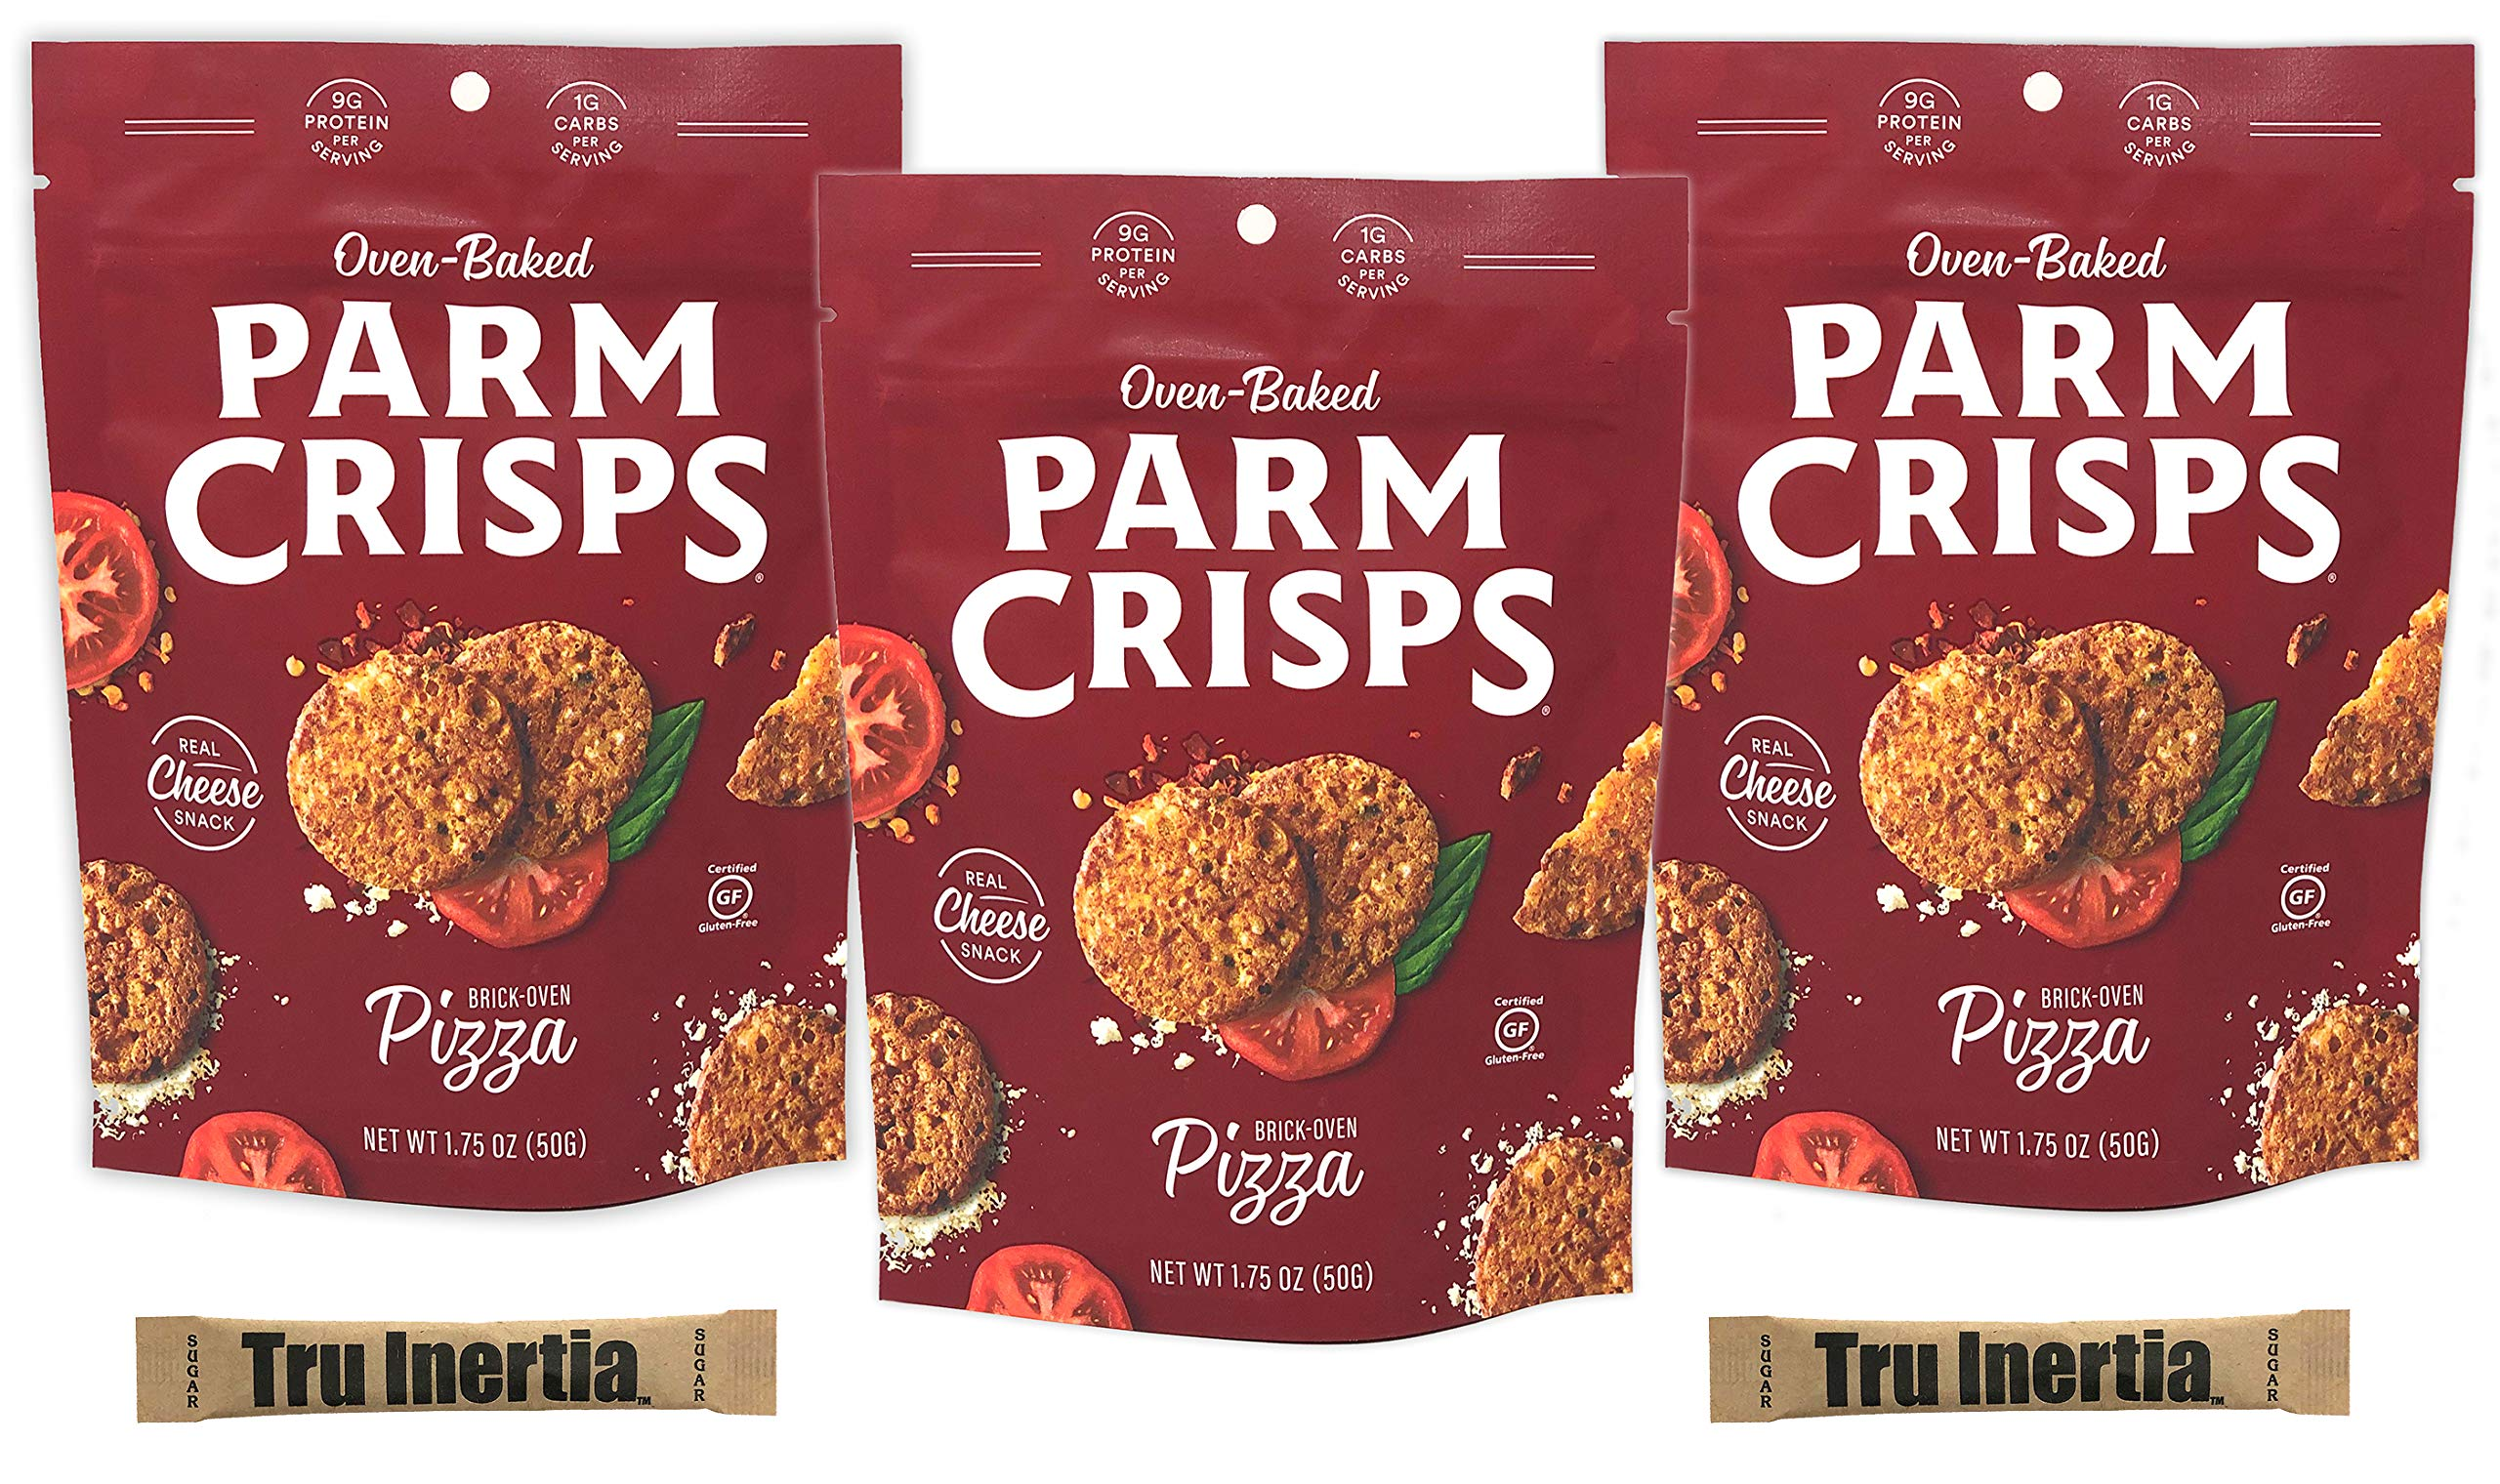 ParmCrisps Brick Oven Pizza Cheese Crisps - Keto Friendly, Gluten Free, 1.75 Ounce Bag Pack of 3 with Tru Inertia Sugar